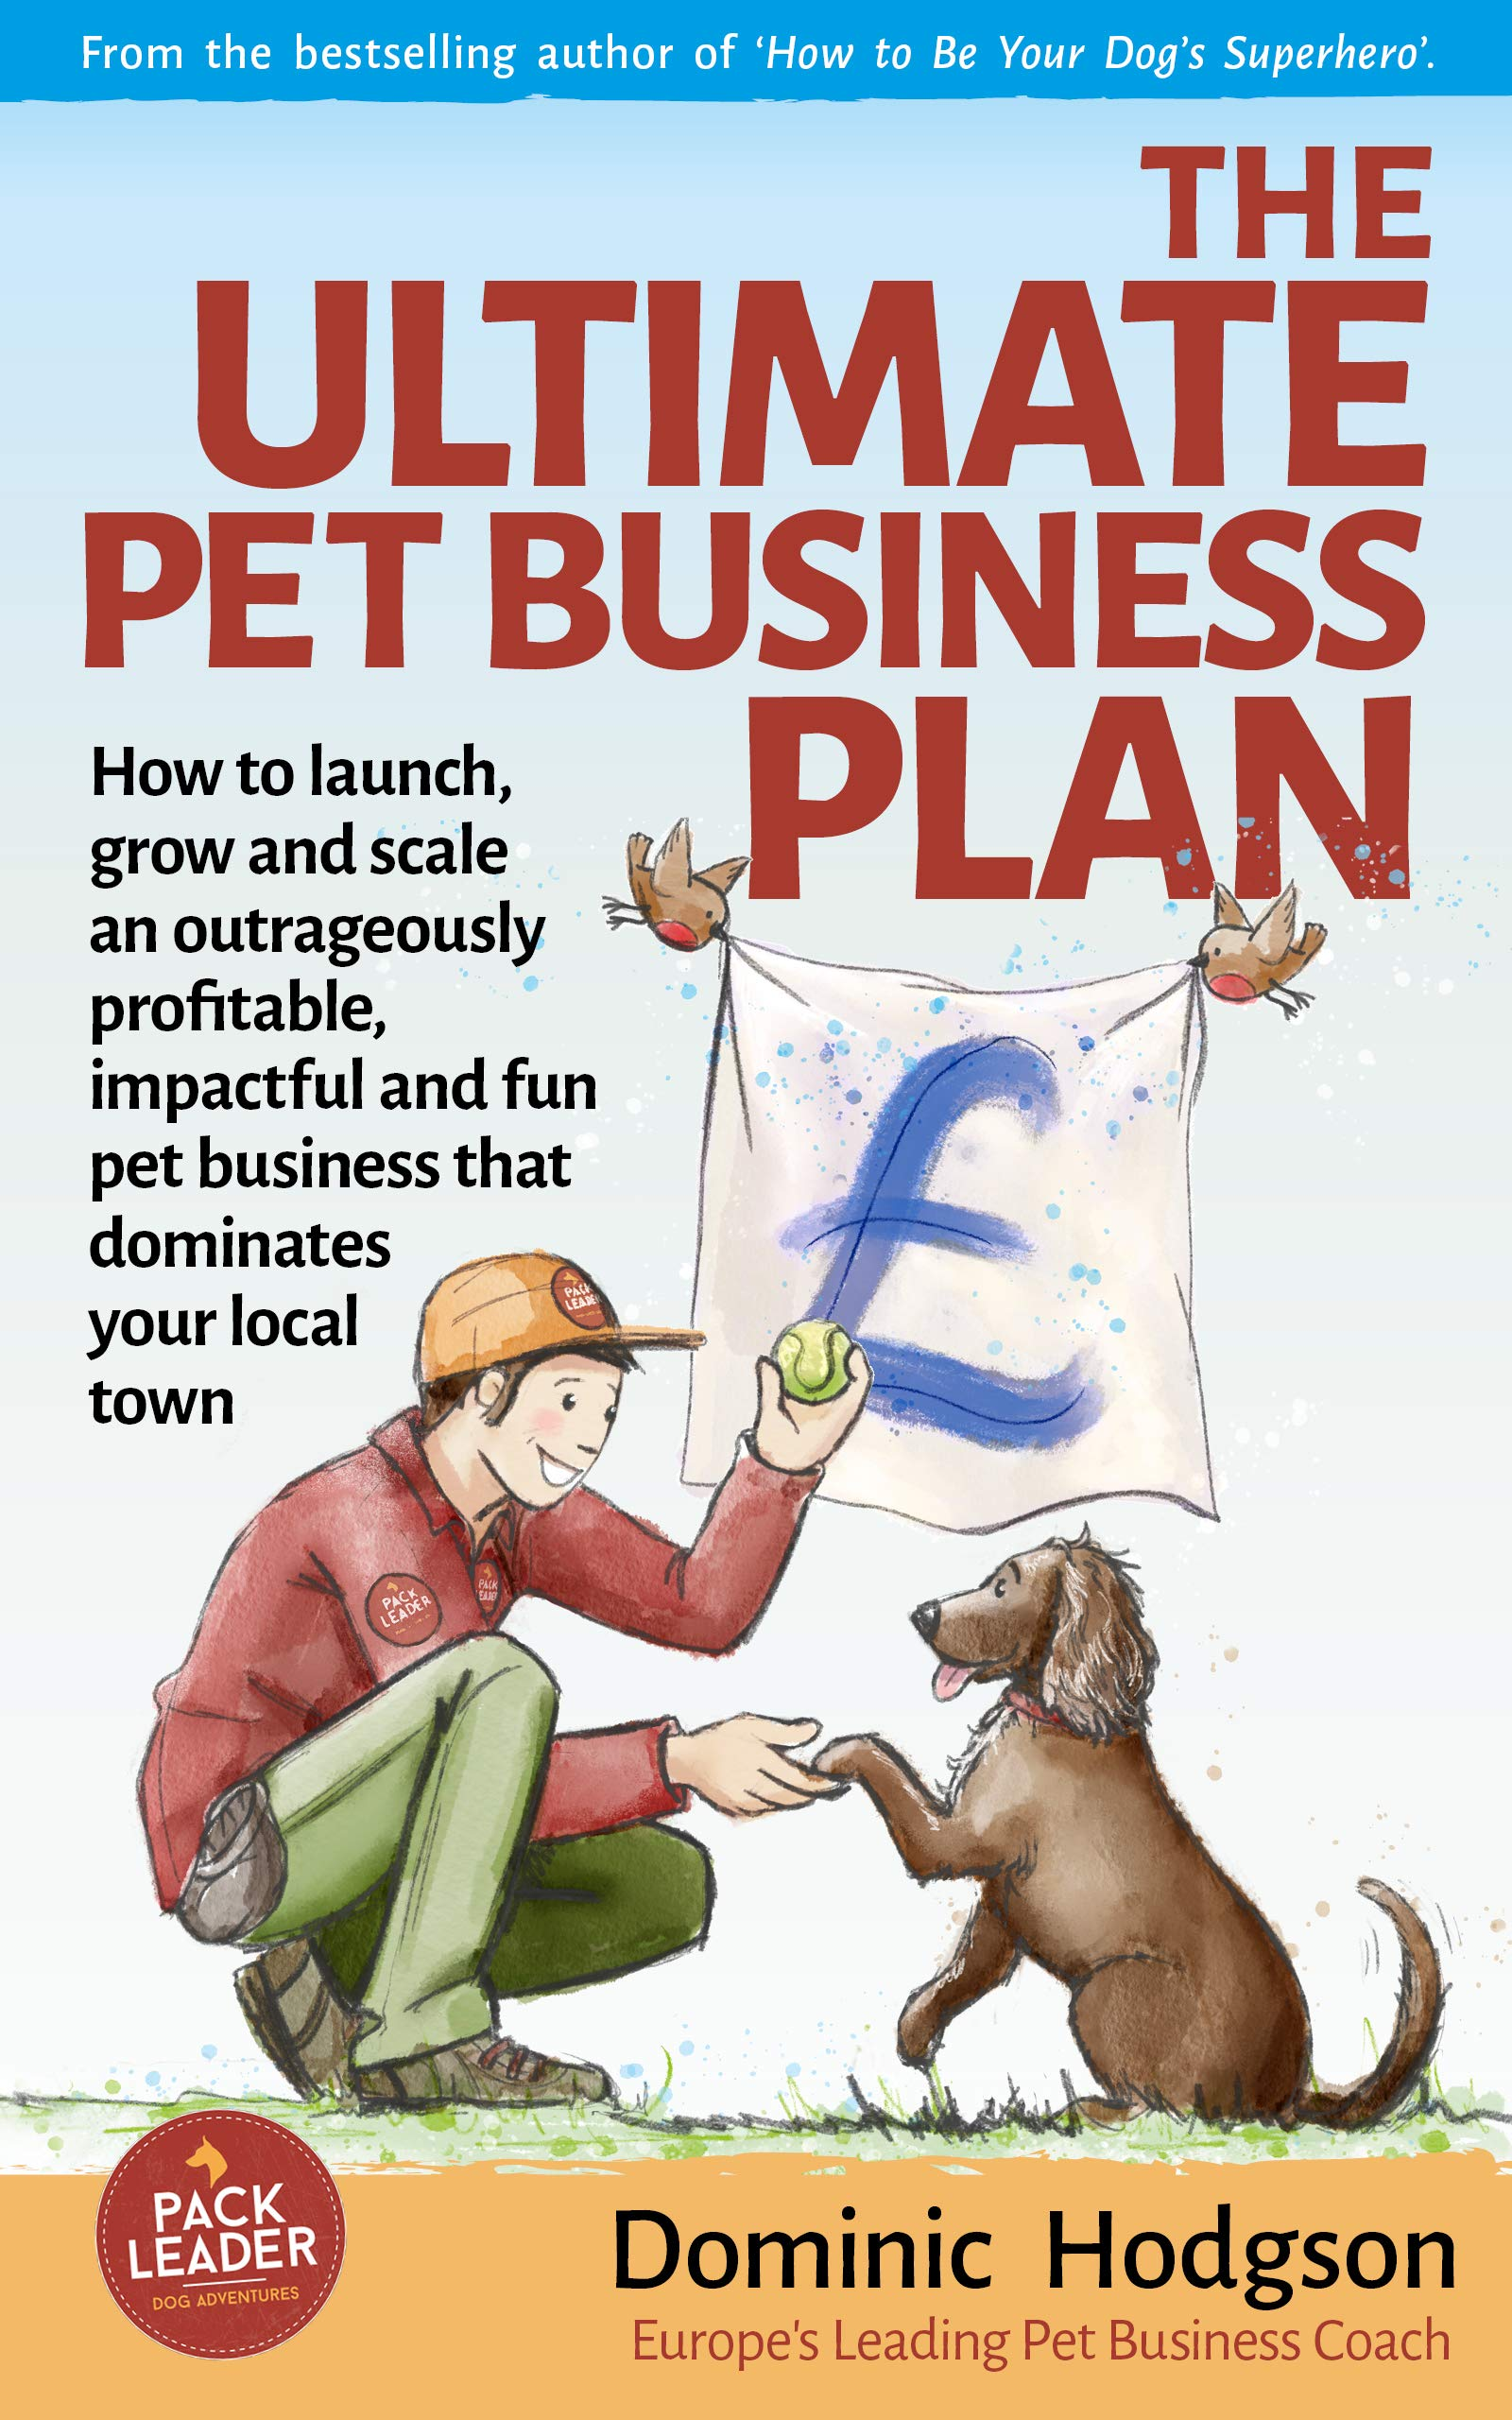 The Ultimate Pet Business Plan: How to launch, grow and scale an outrageously profitable, impactful and fun pet business that dominates your local town (Grow Your Pet Business FAST! Book 2)